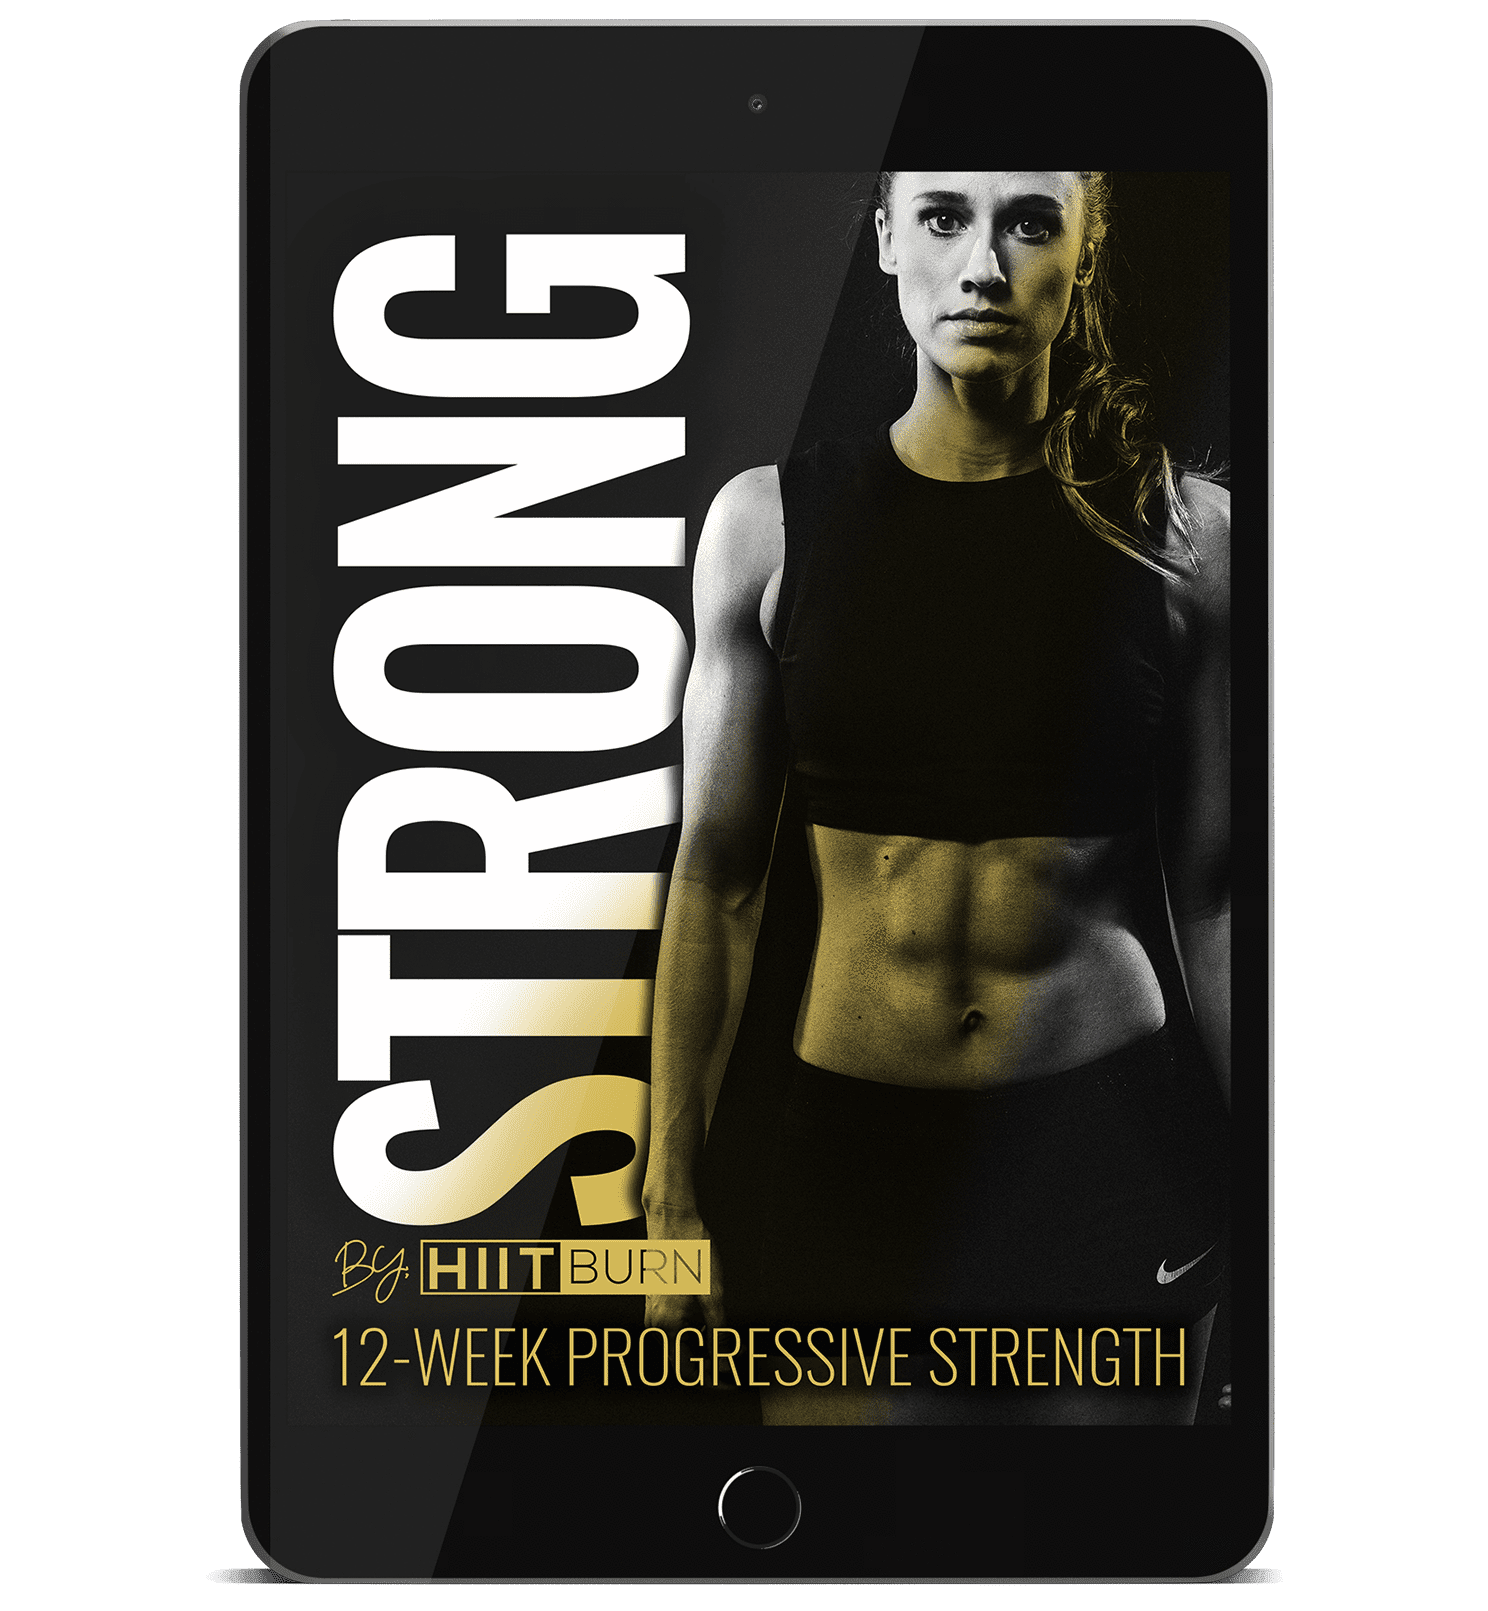 Copy of STRONG by HIITBURN 12-Week Progressive Strength + Nutrition Coaching